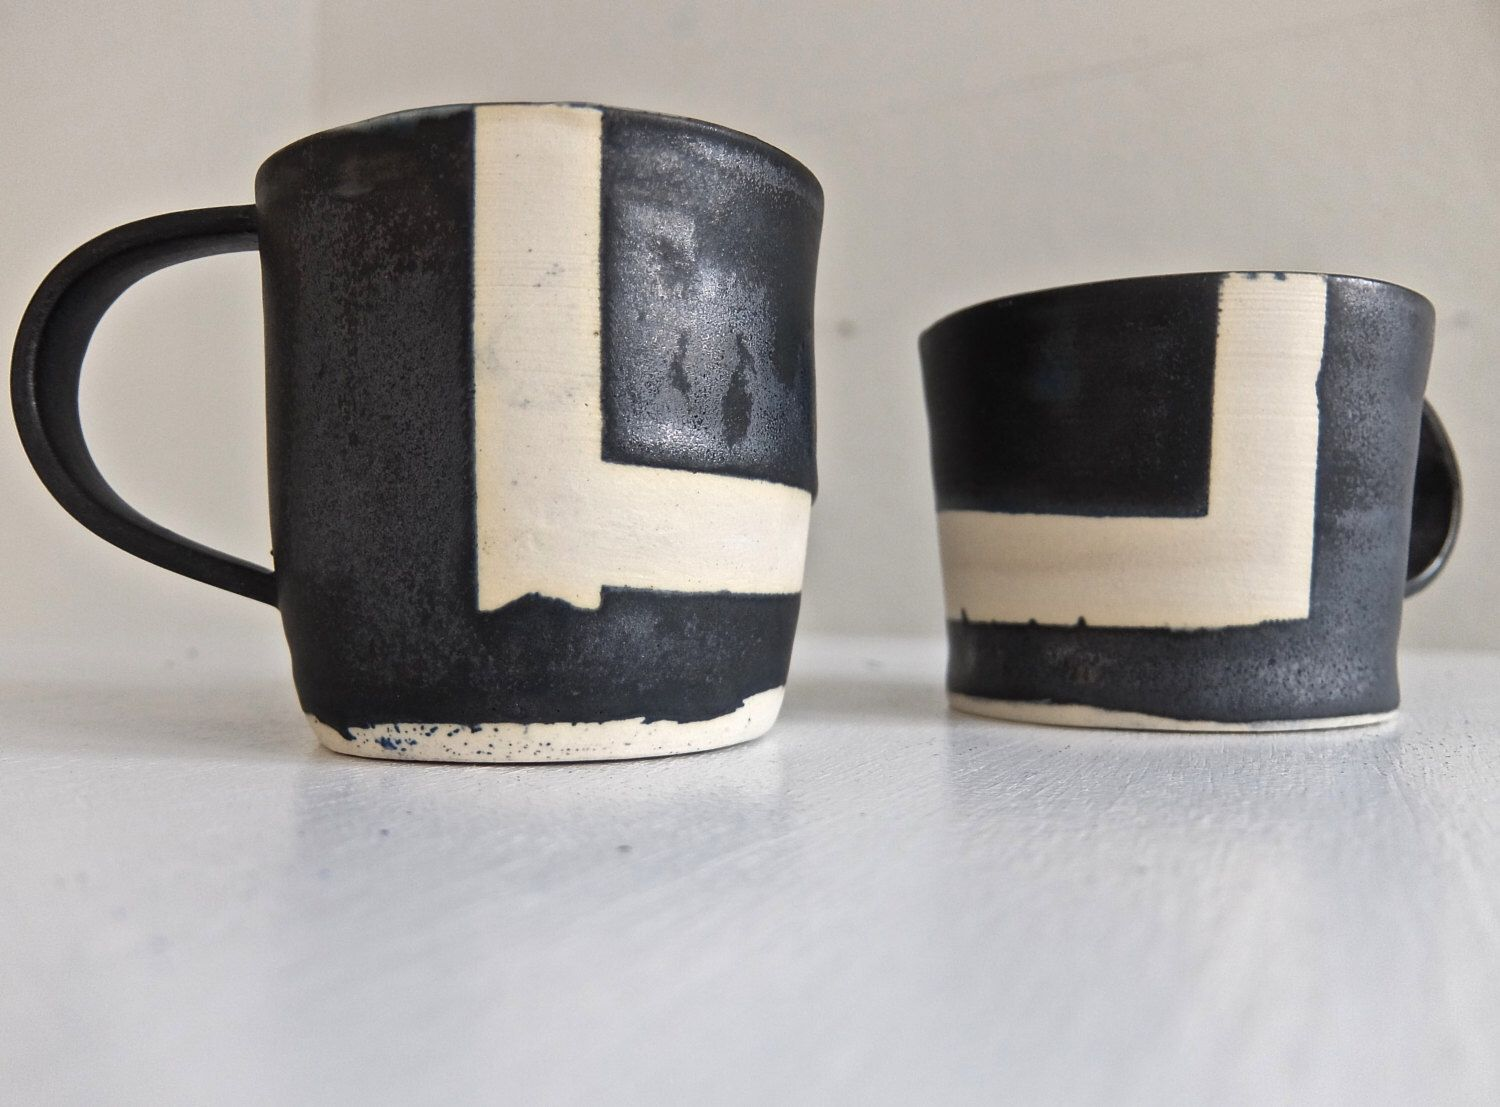 Items Similar To Handmade Ceramic Mug With Bold Pattern, White Clay And  Gunmetal Glaze, Contemporary. Modern Kitchen, Approx X X On Etsy